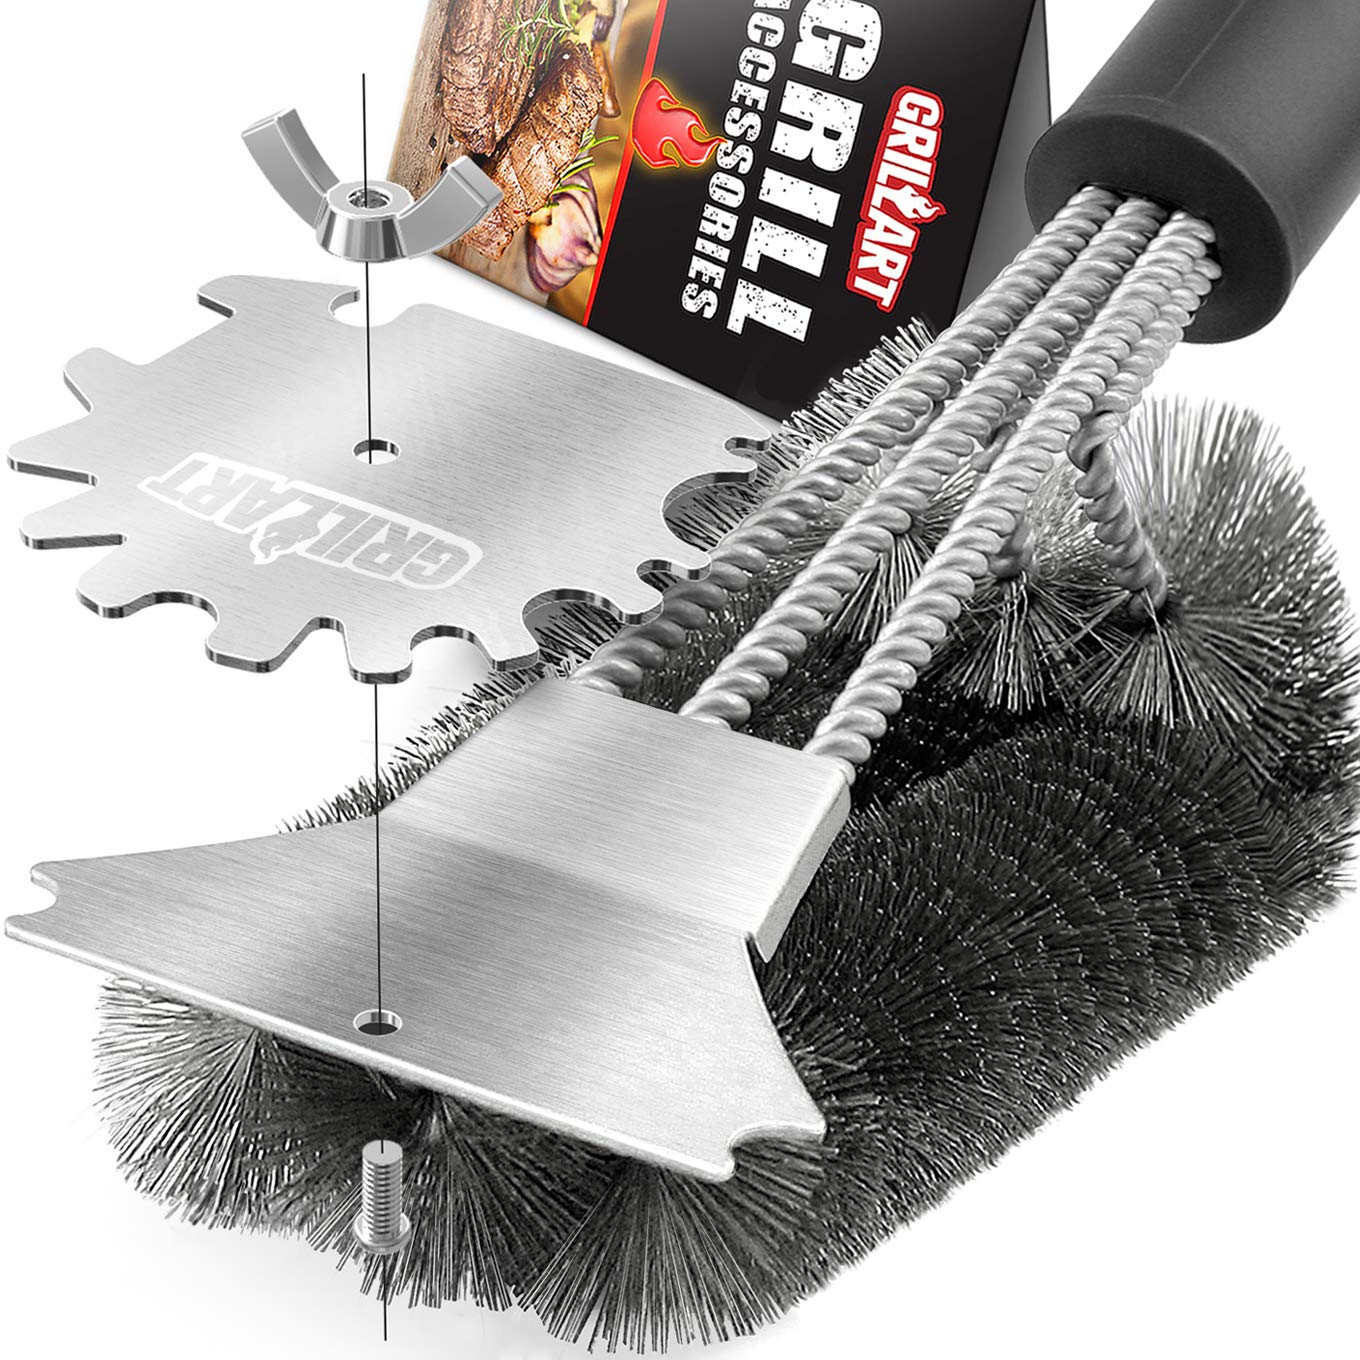 GRILLART Grill Brush and Scraper. Best BBQ Grill Cleaner Brush 3D Scrubber - Stainless Steel Wire Bristle Barbecue Cleaning Tool. Perfect Grill Accessories for Weber & All Gas/Charcoal Grilling Grates by GRILLART